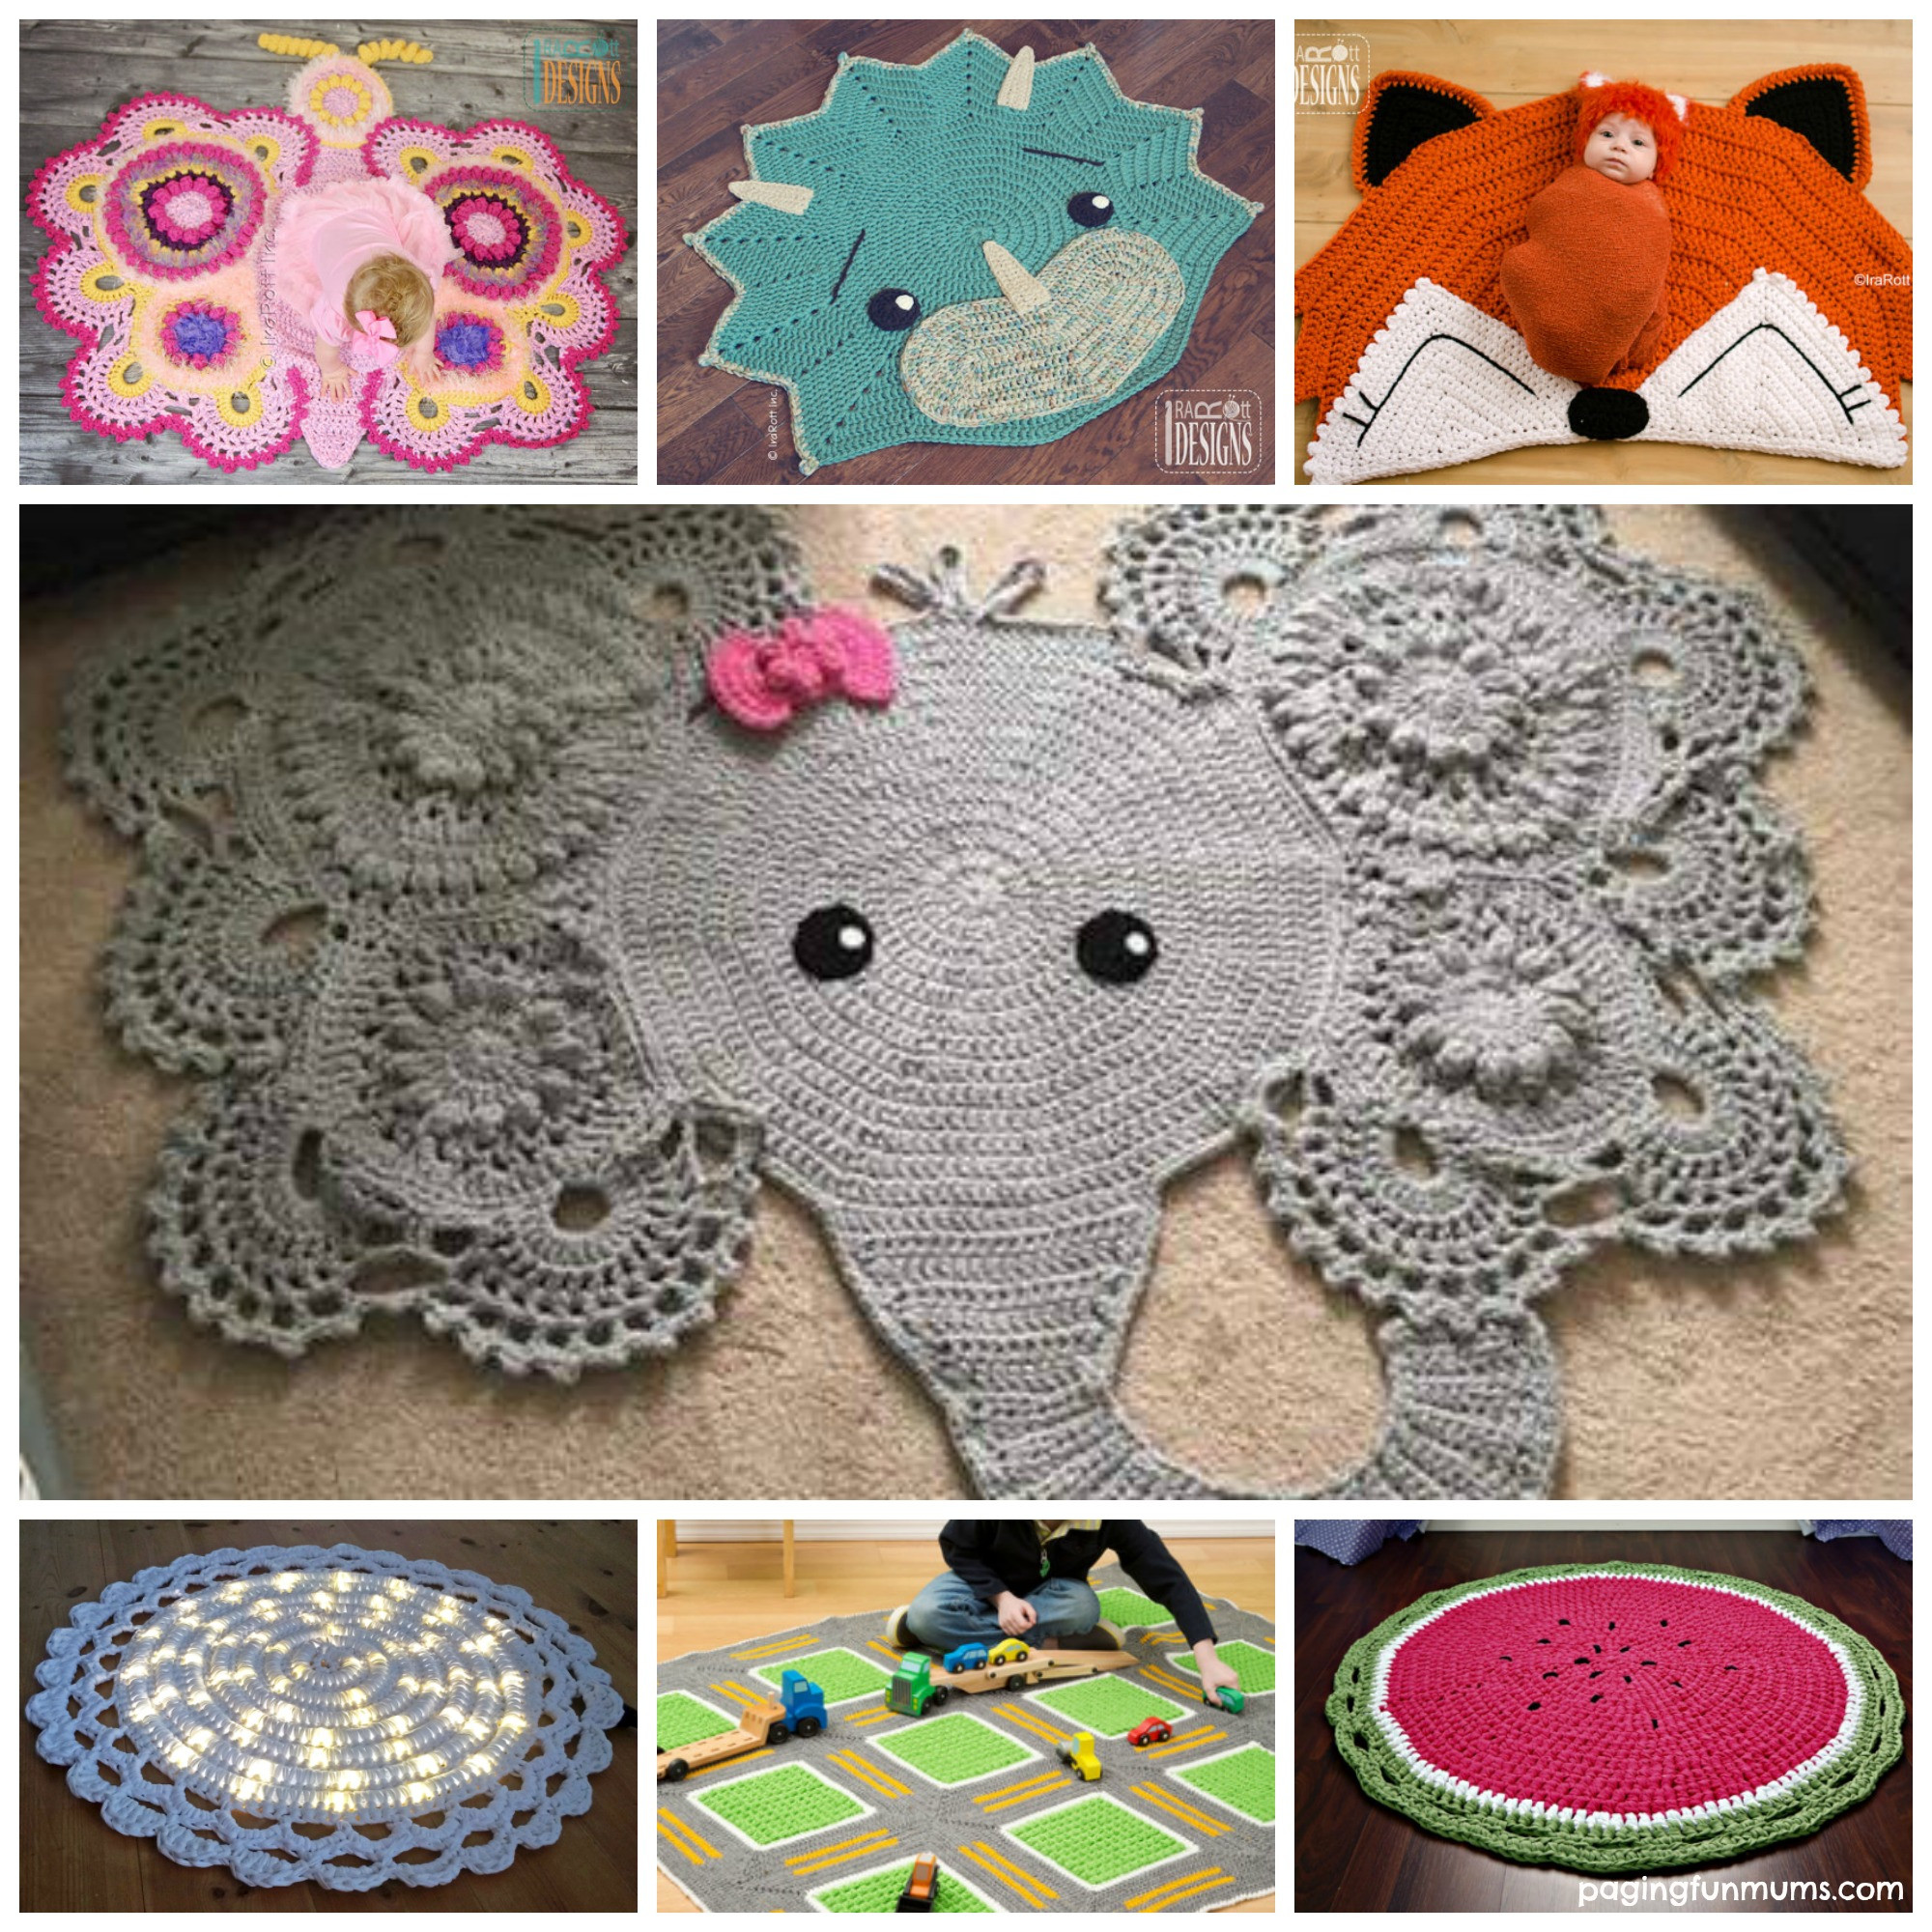 Crochet Rug Patterns Unique Clever Crochet Throw Rugs Paging Fun Mums Of Amazing 41 Images Crochet Rug Patterns